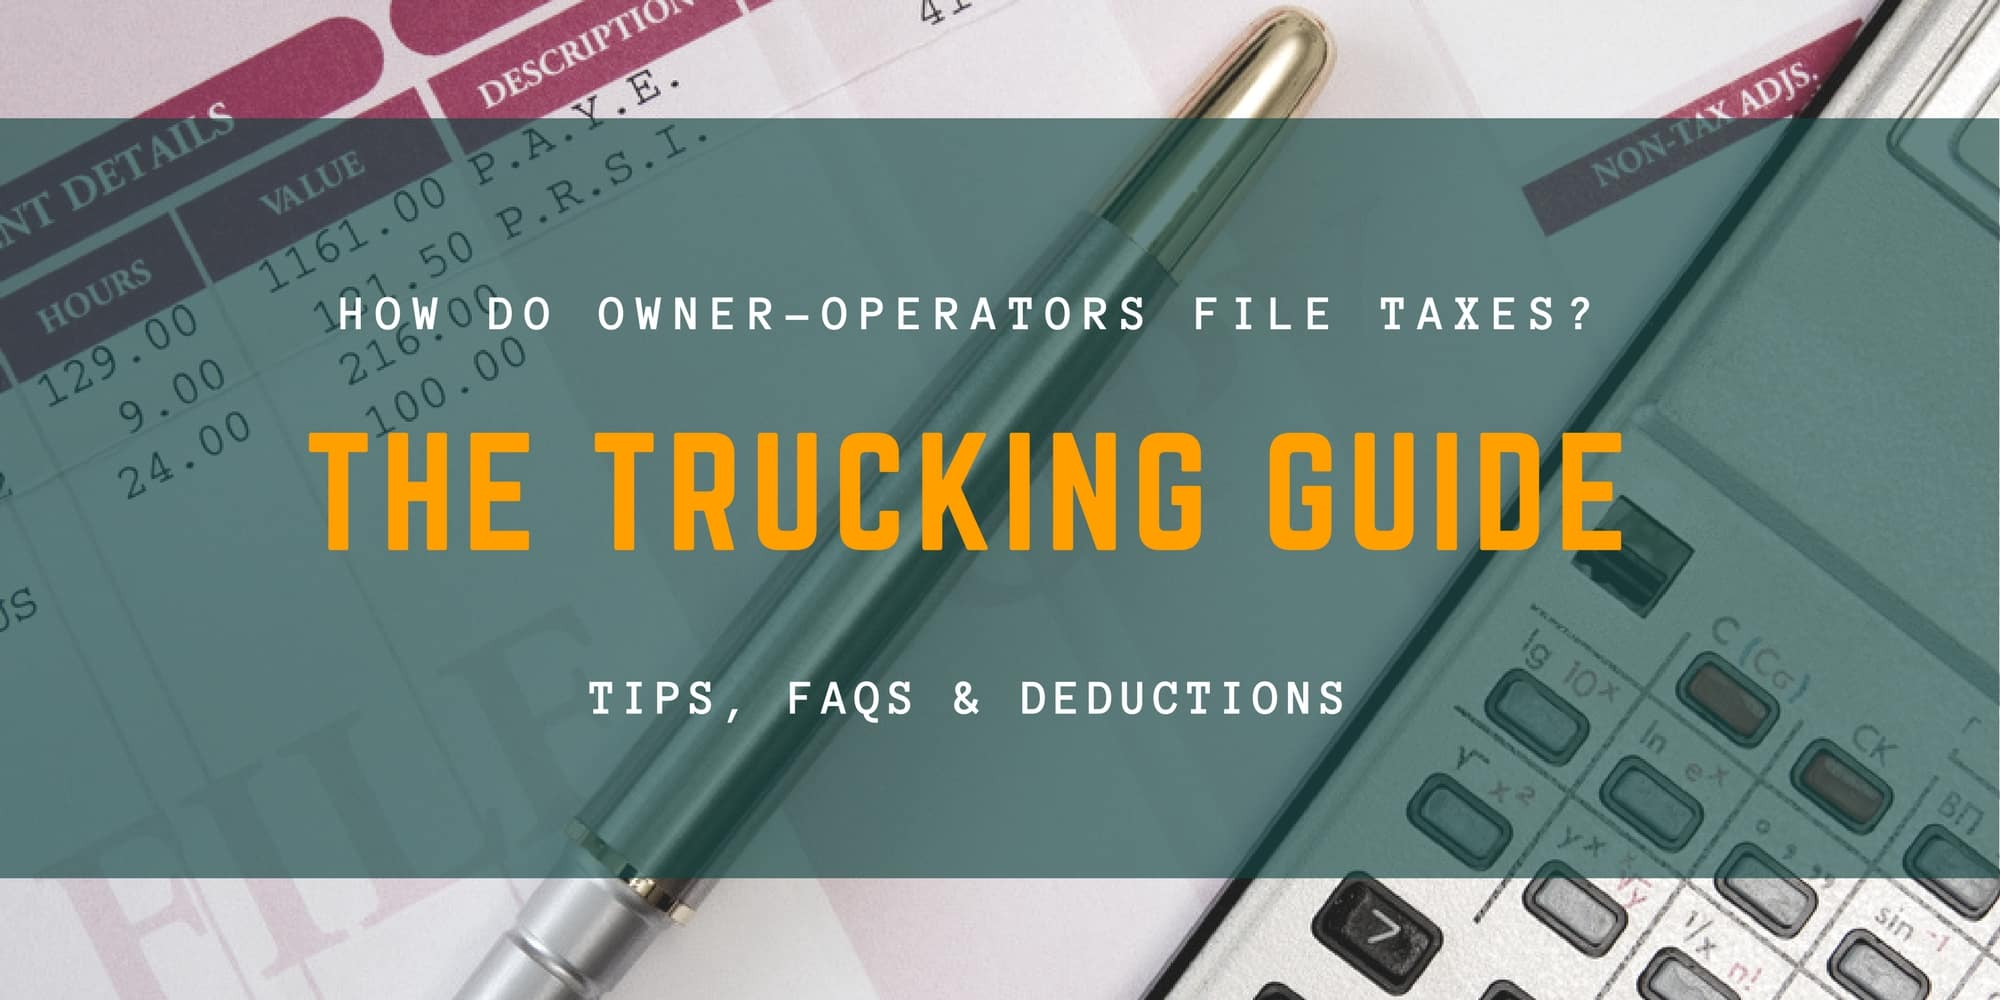 Tax Tips for Truck Drivers - How do Owner-Operators File Taxes?